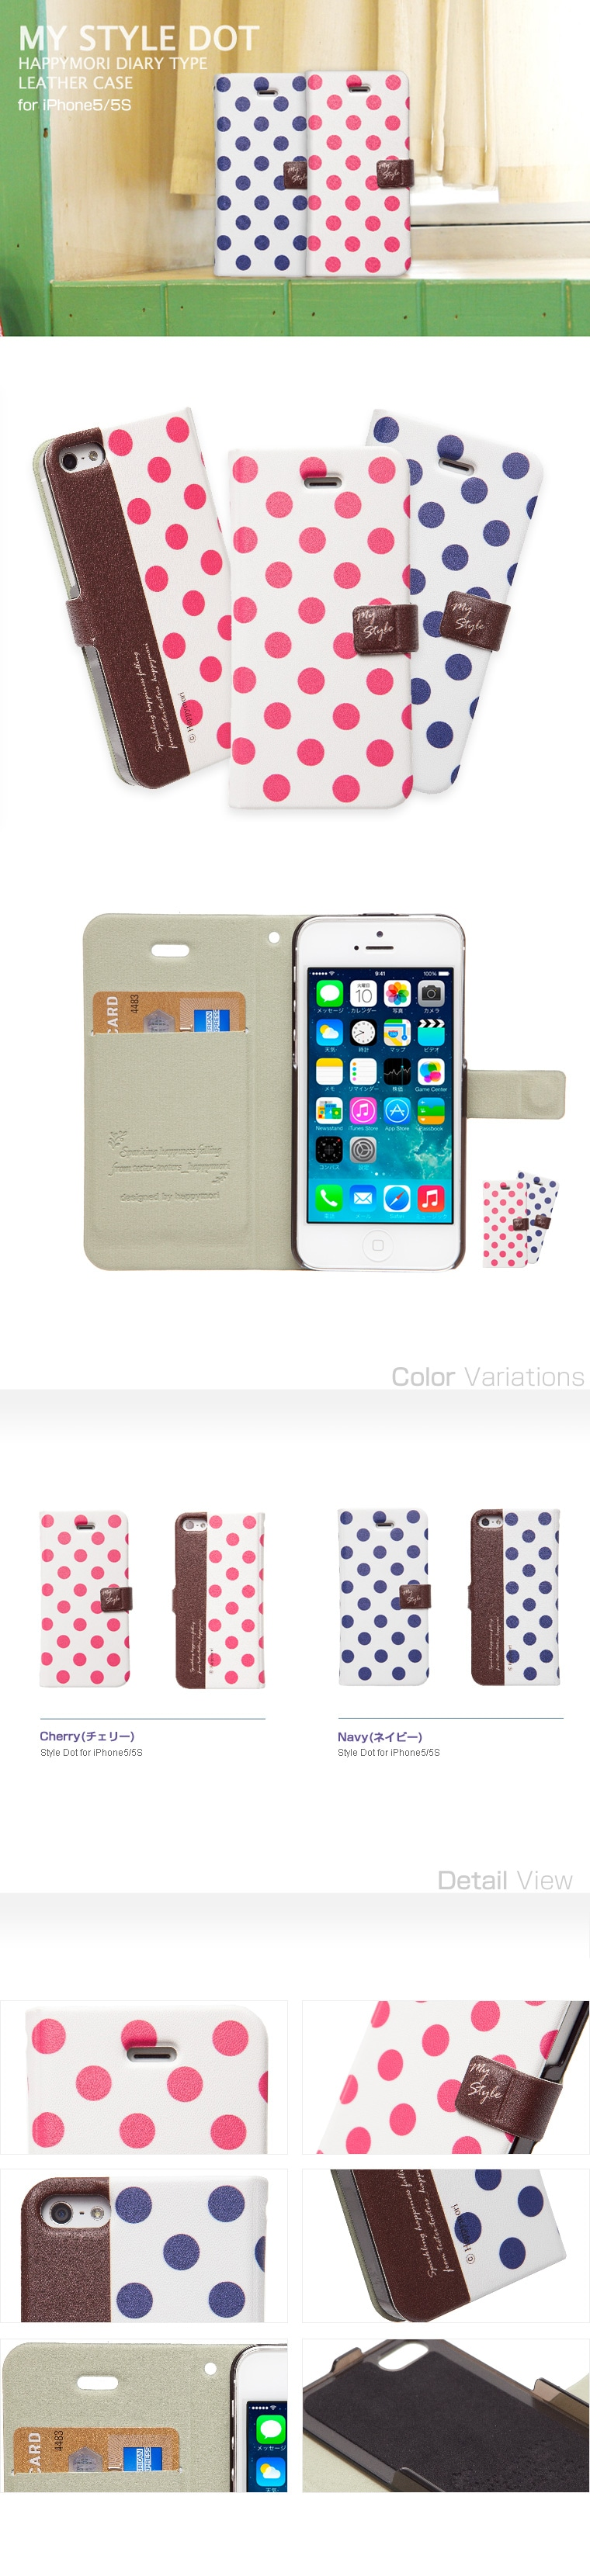 Happymori iPhone5S/5 Style Dot Diary (スタイルドット ダイアリー)